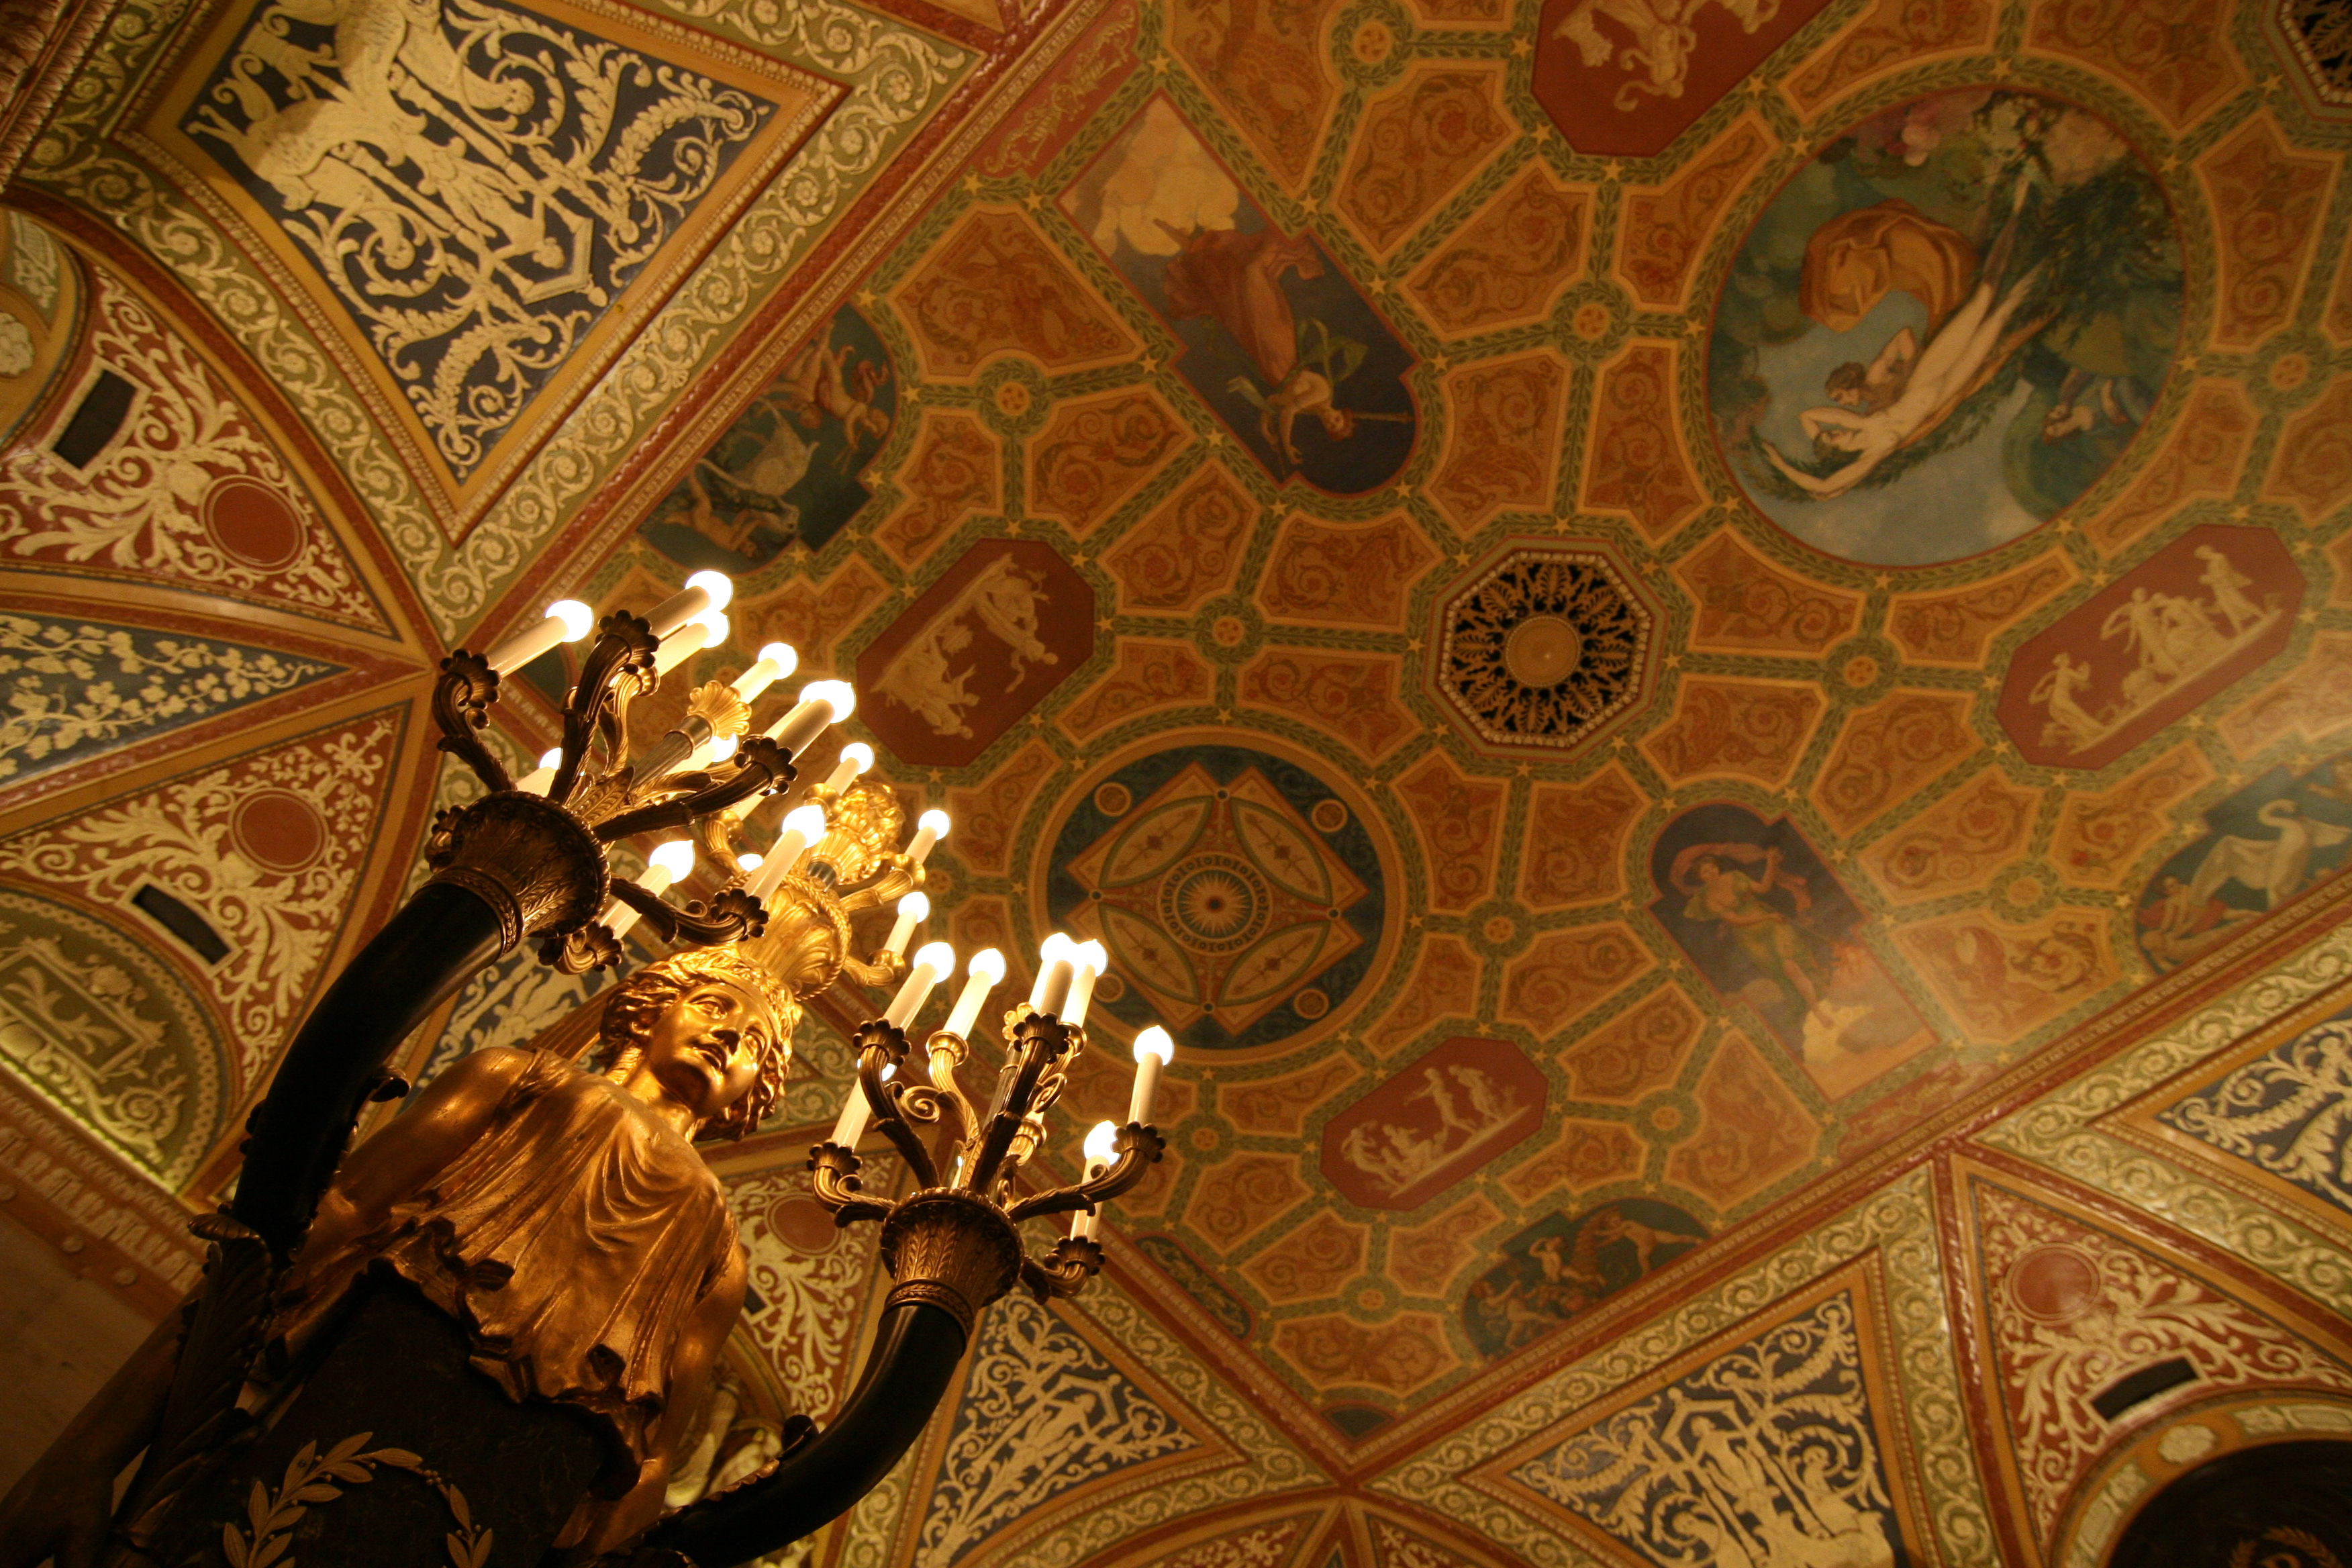 The iconic lobby of the Palmer House Hotel is getting restored to its former glory